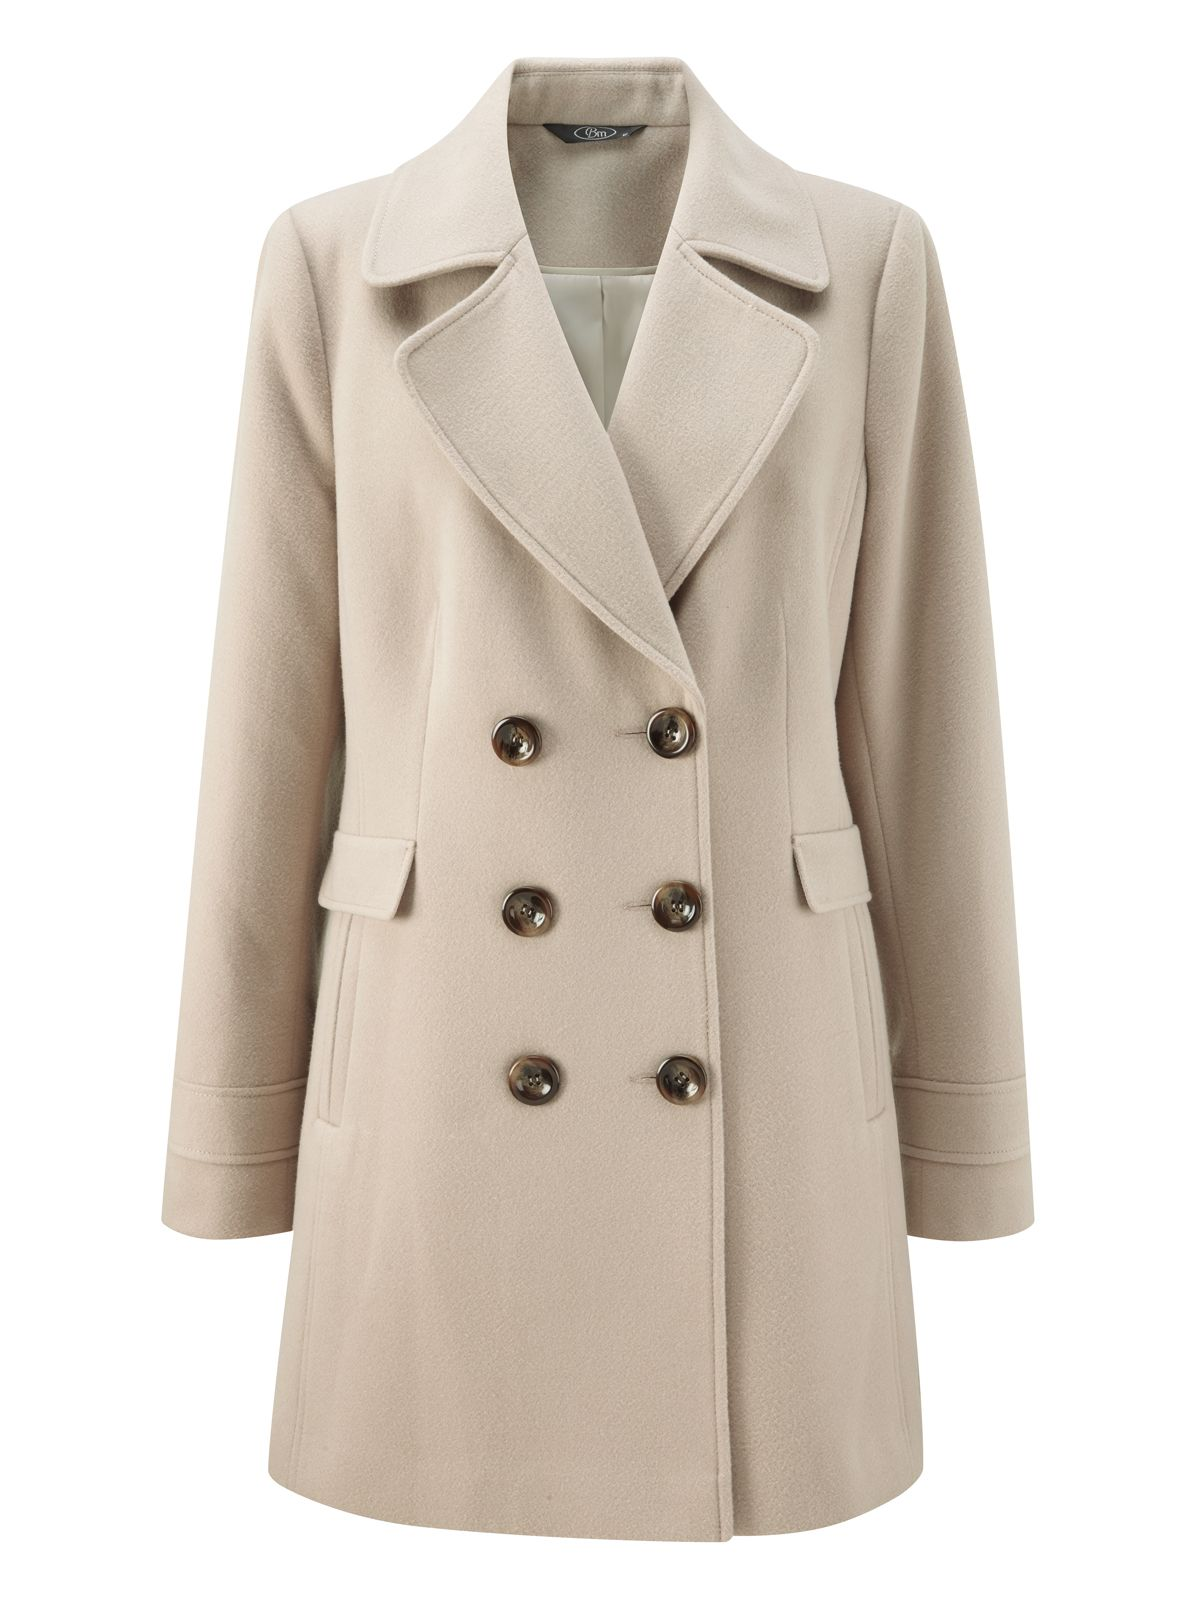 CLASSIC COATS FOR PLUS SIZE WOMEN AT BONMARCHE | Stylish Curves